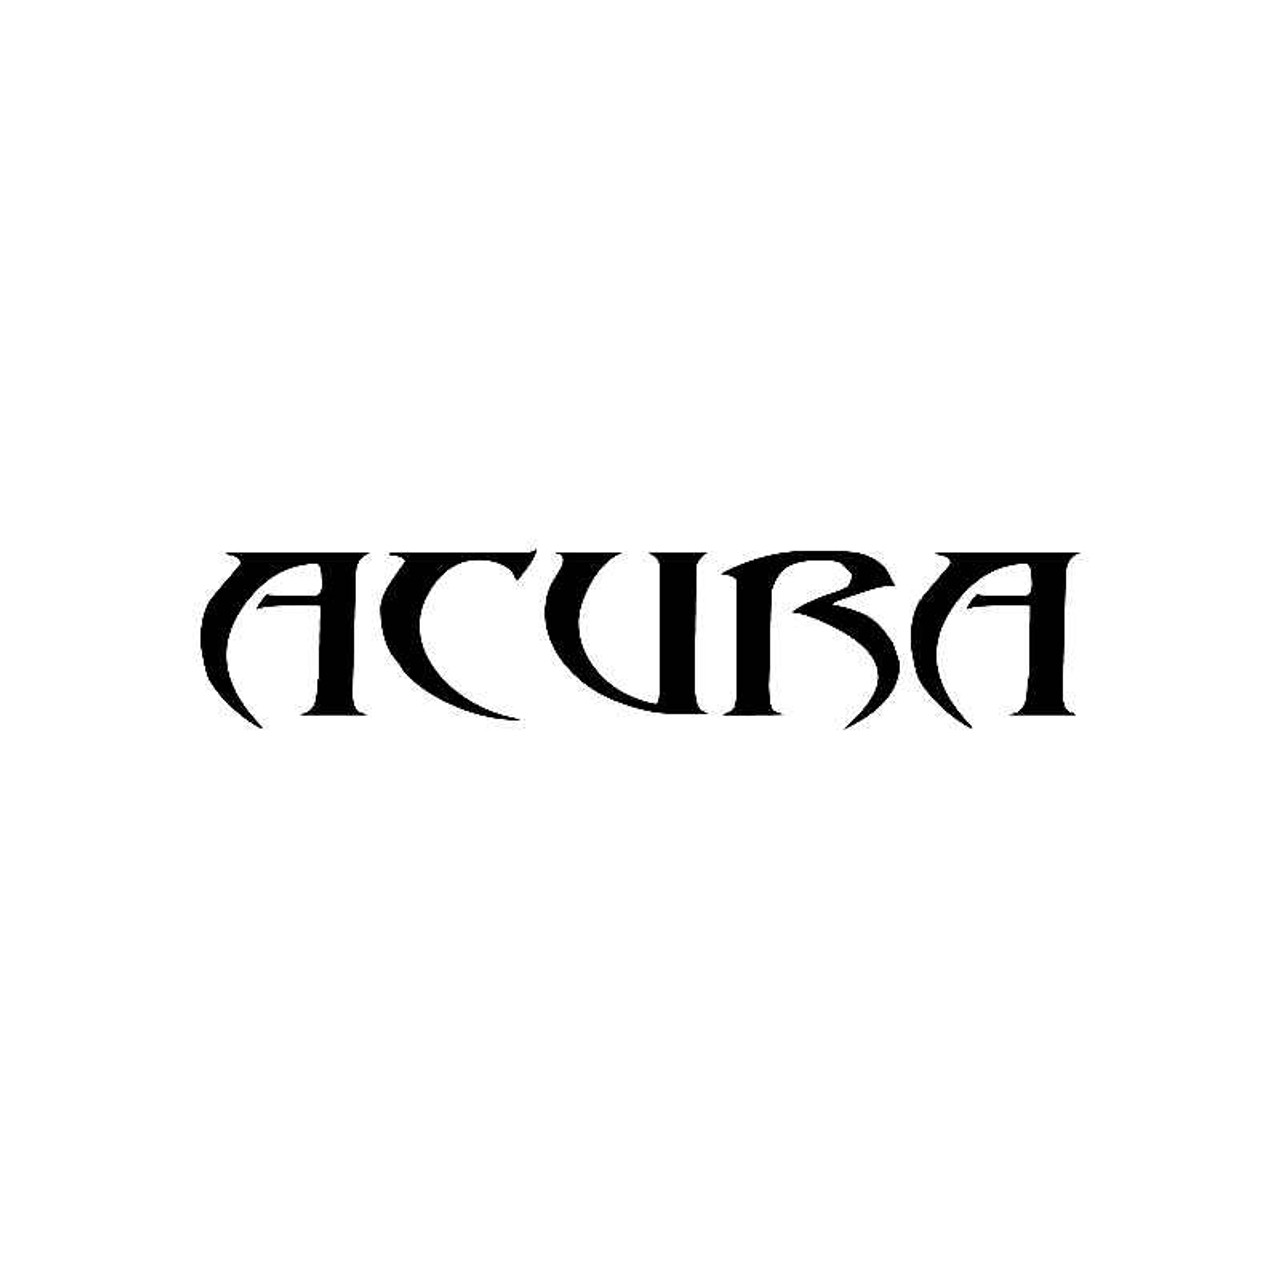 Tribal Acura Logo Jdm Decal - Acura decals